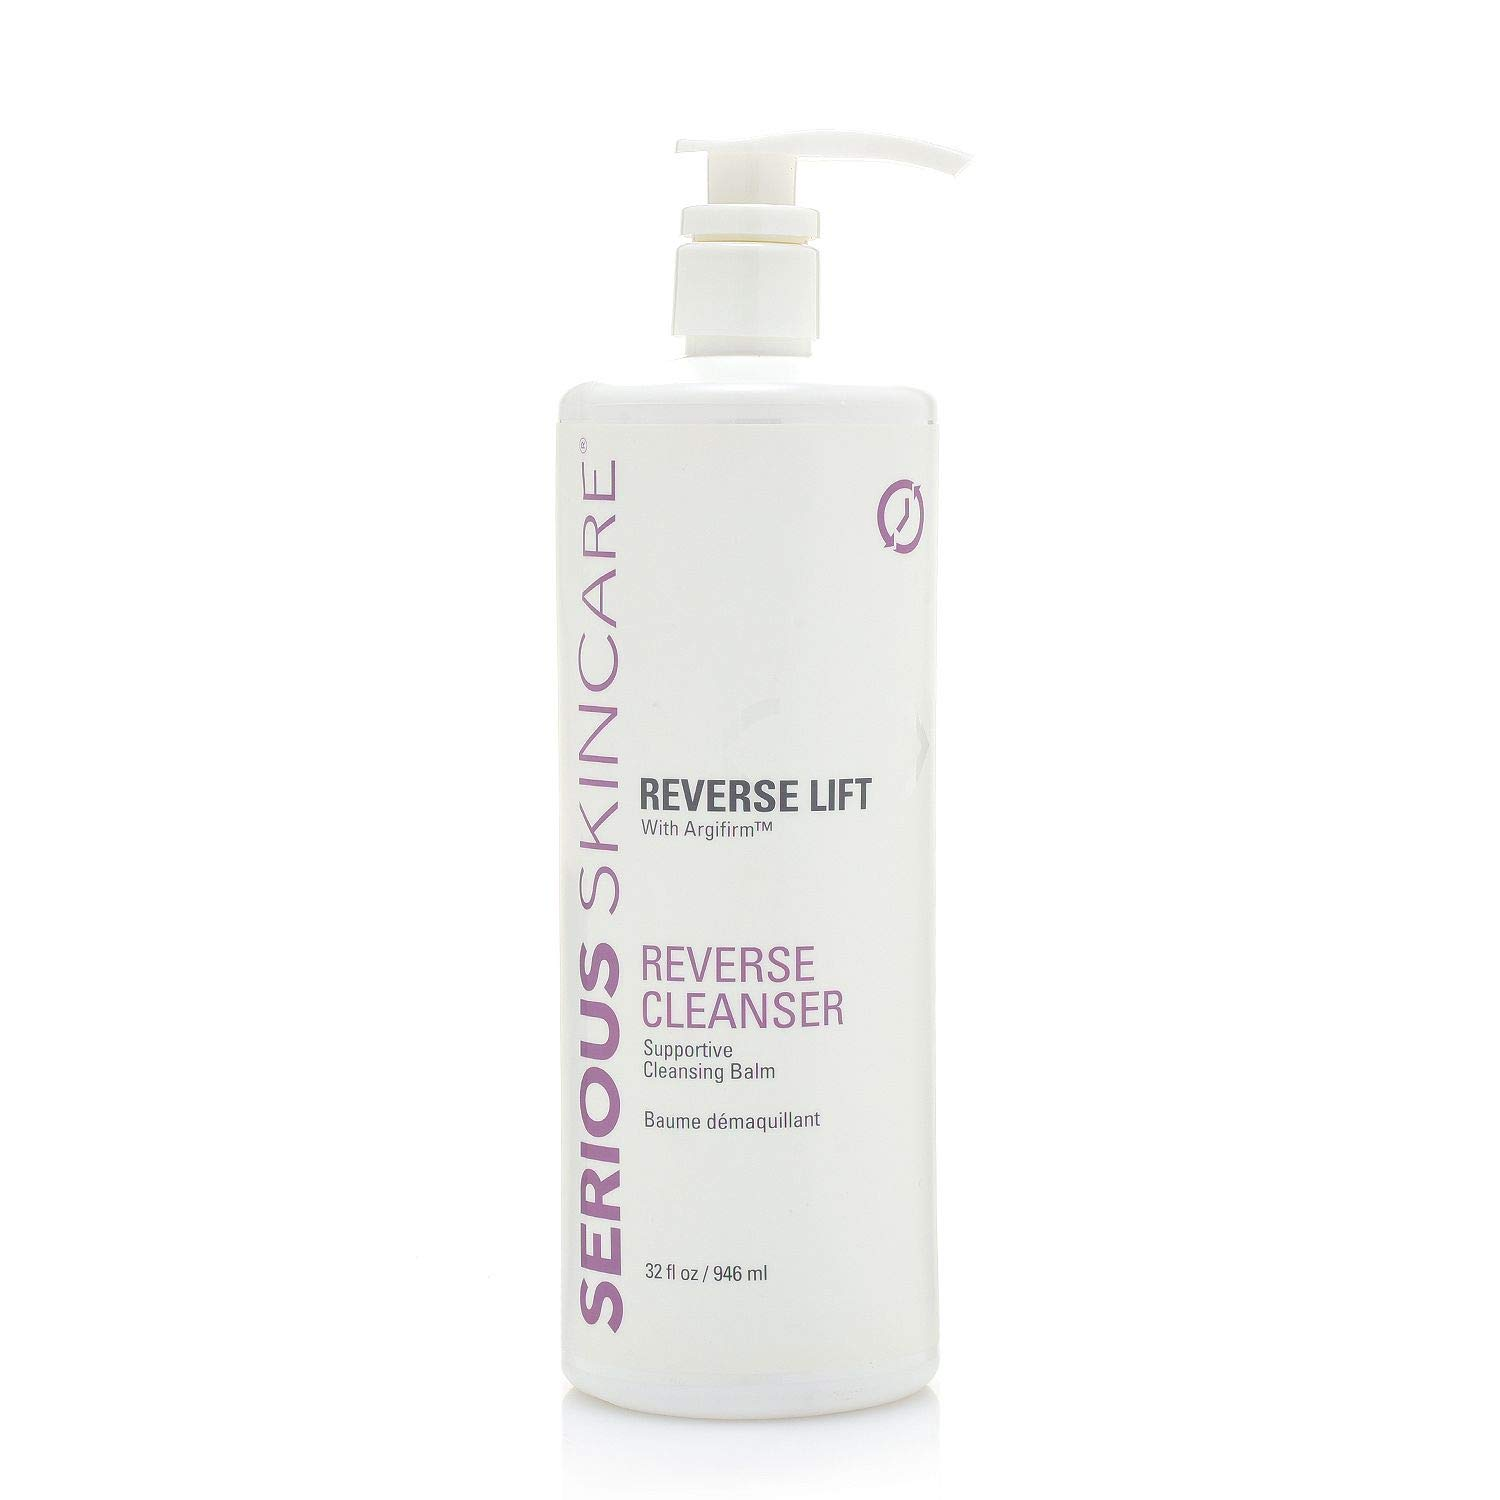 Serious Skincare Reverse Lift Cleanser with Argifirm